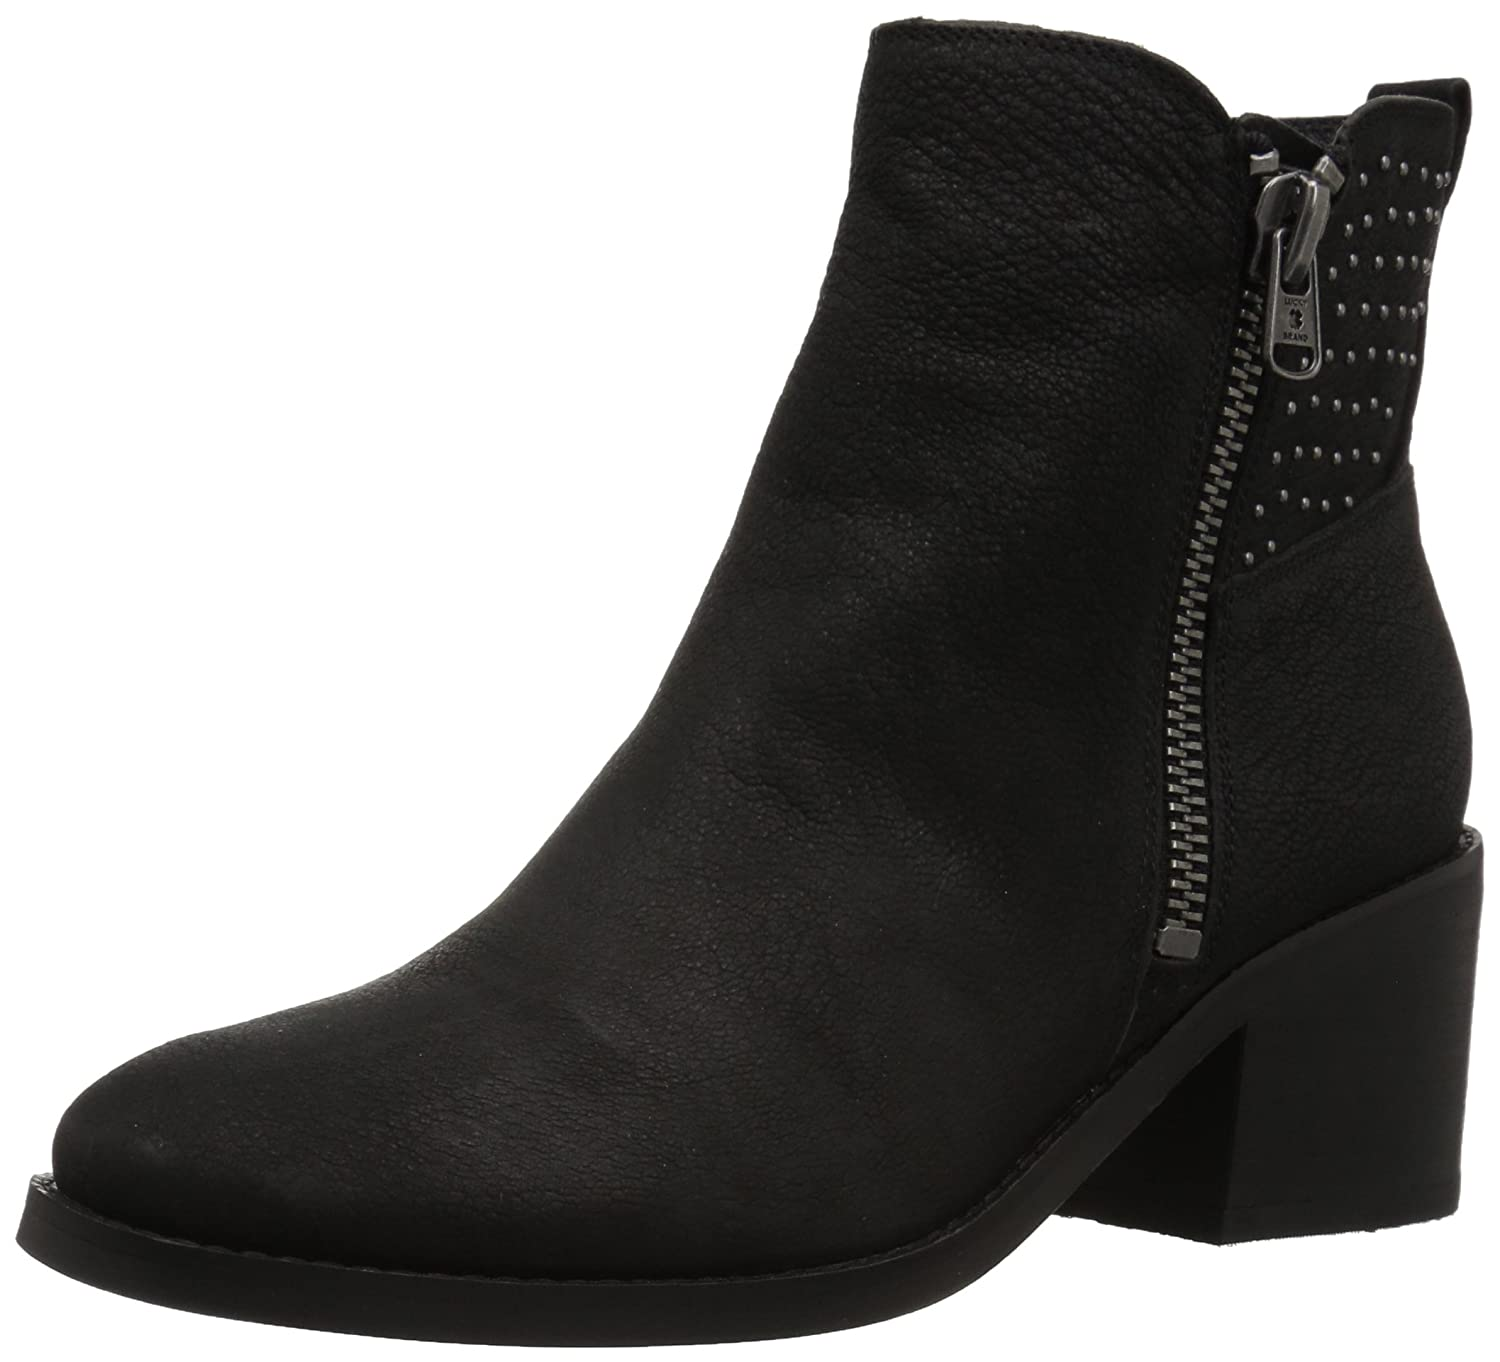 Lucky Brand Women's Kalie Fashion Boot B06XCZRM8C 6.5 M US|Black